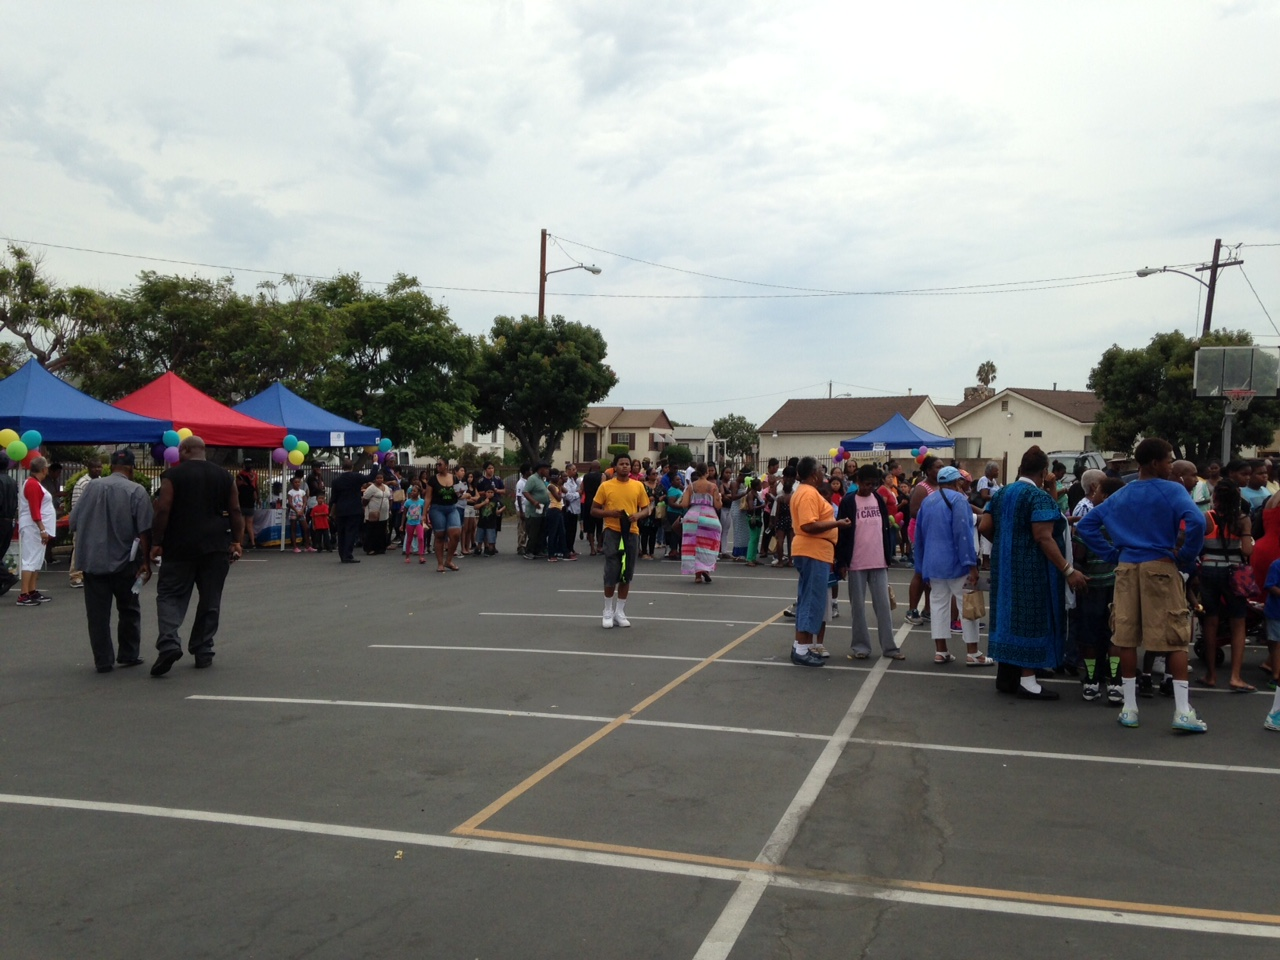 National Night Out in Los Angeles